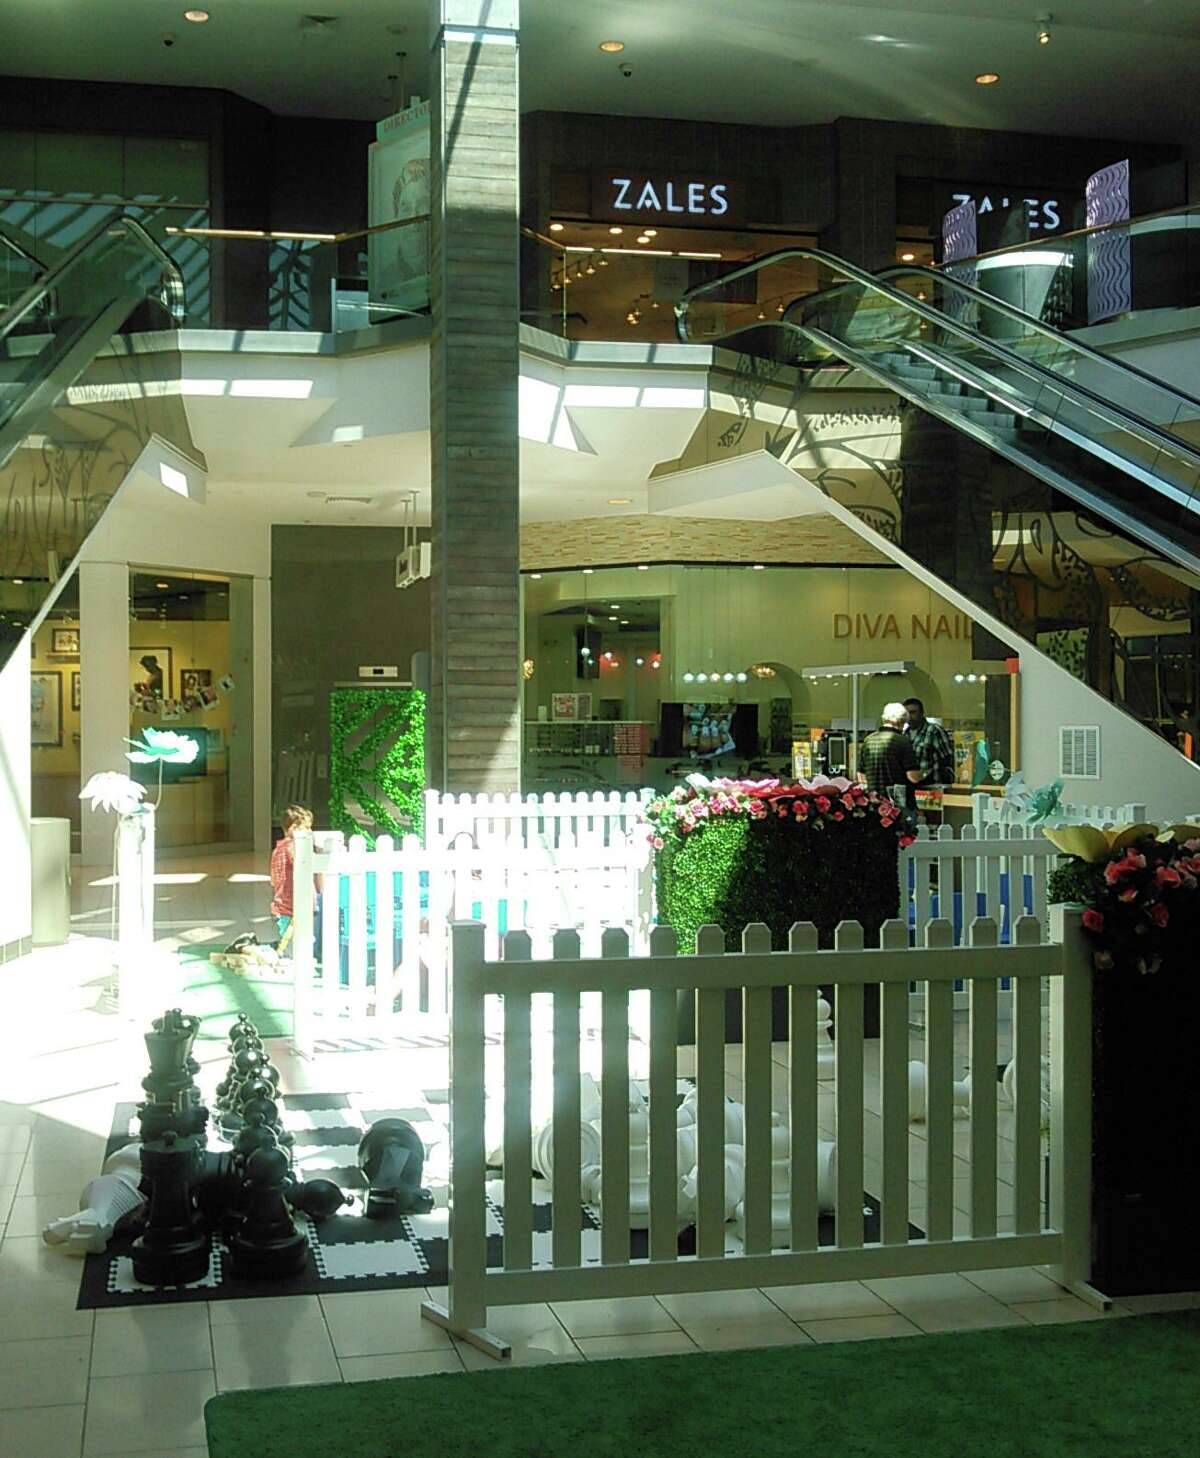 The play area in the Westfield Trumbull mall near the escalator where a toddler was injured in 2018. Her mother is suing the mall and the escalator company.